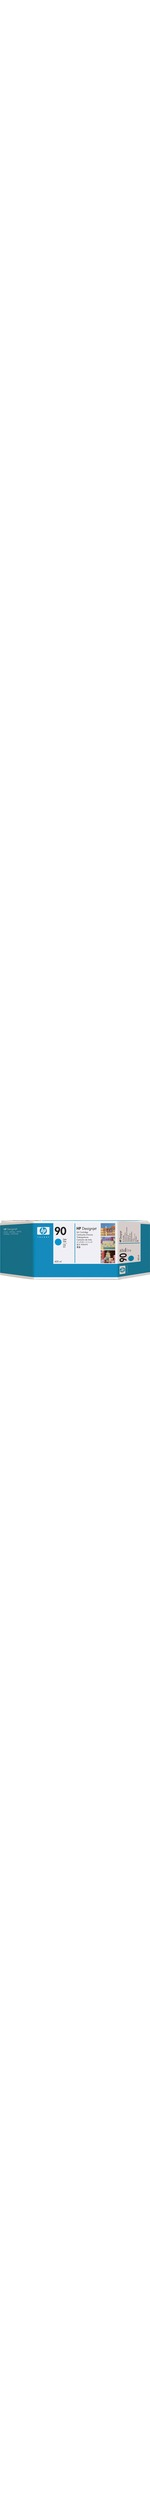 HP 90 Cyan Ink Cartridge - 400ml